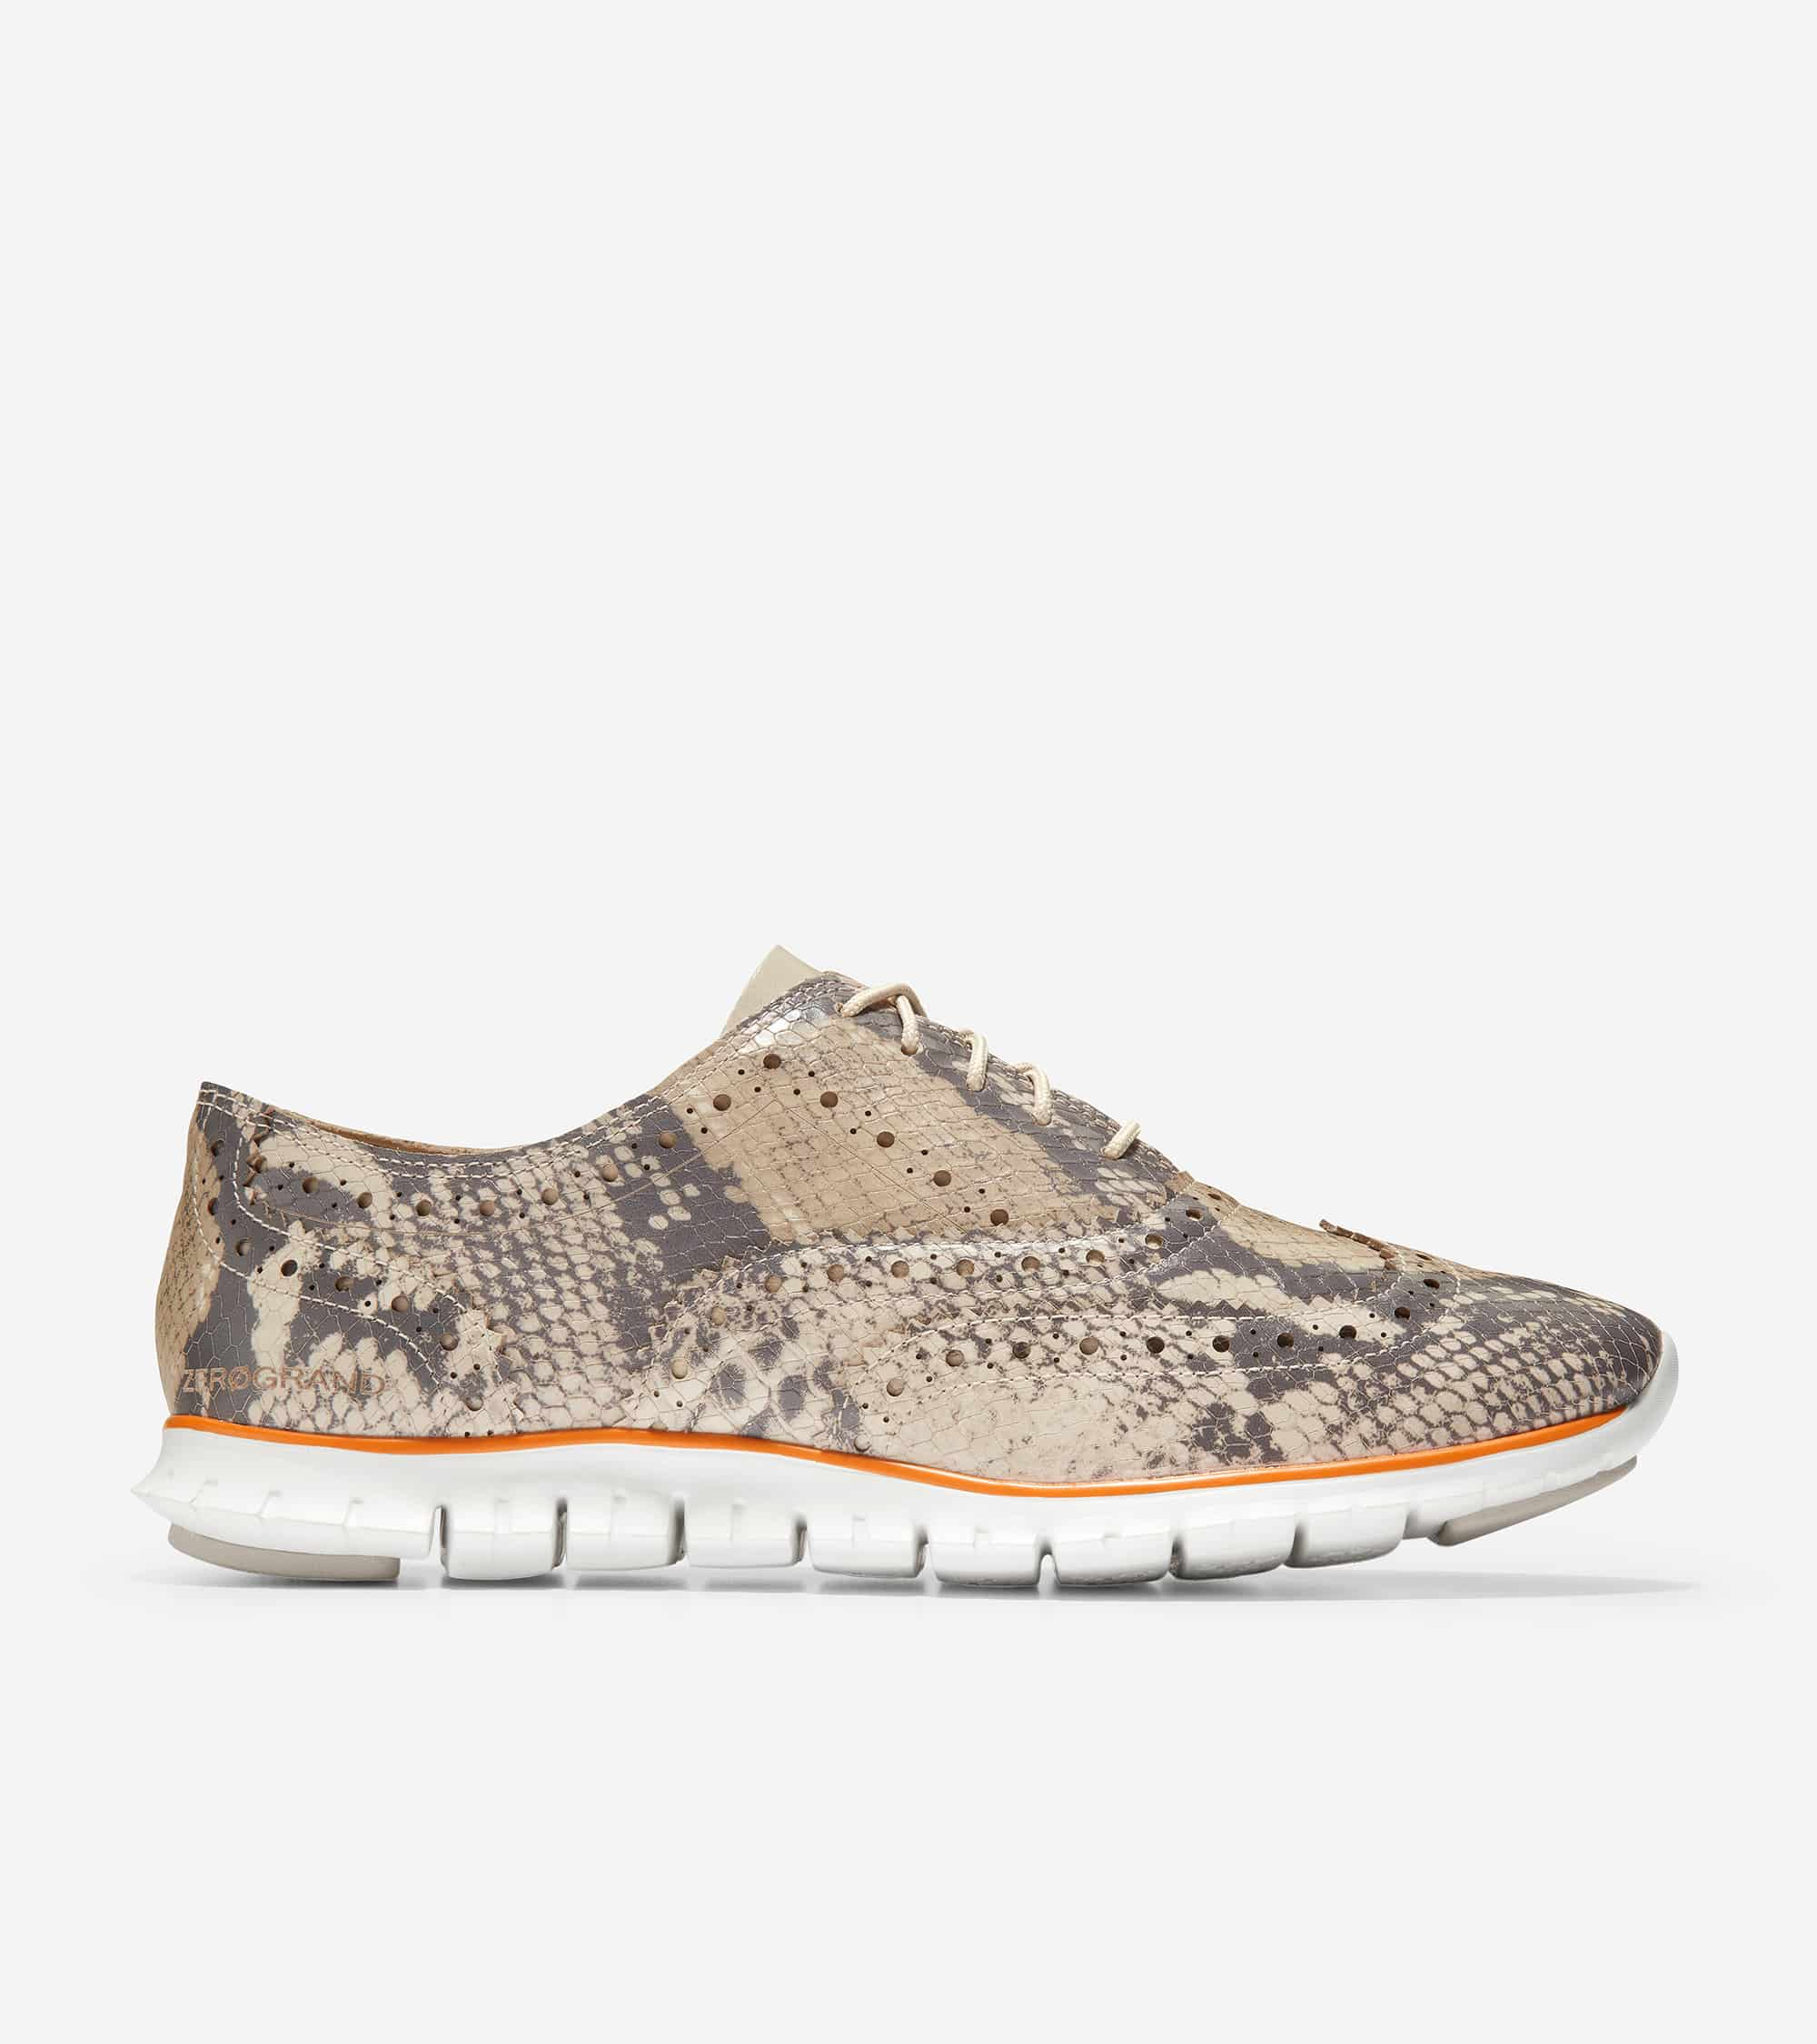 ZEROGRAND WING OX CLOSED HOLE II PYTHON PRINTED LEATHER / CEMENT LEATHER / OPTIC WHITE MIDSOLE / CEMENT RUBBER PODS